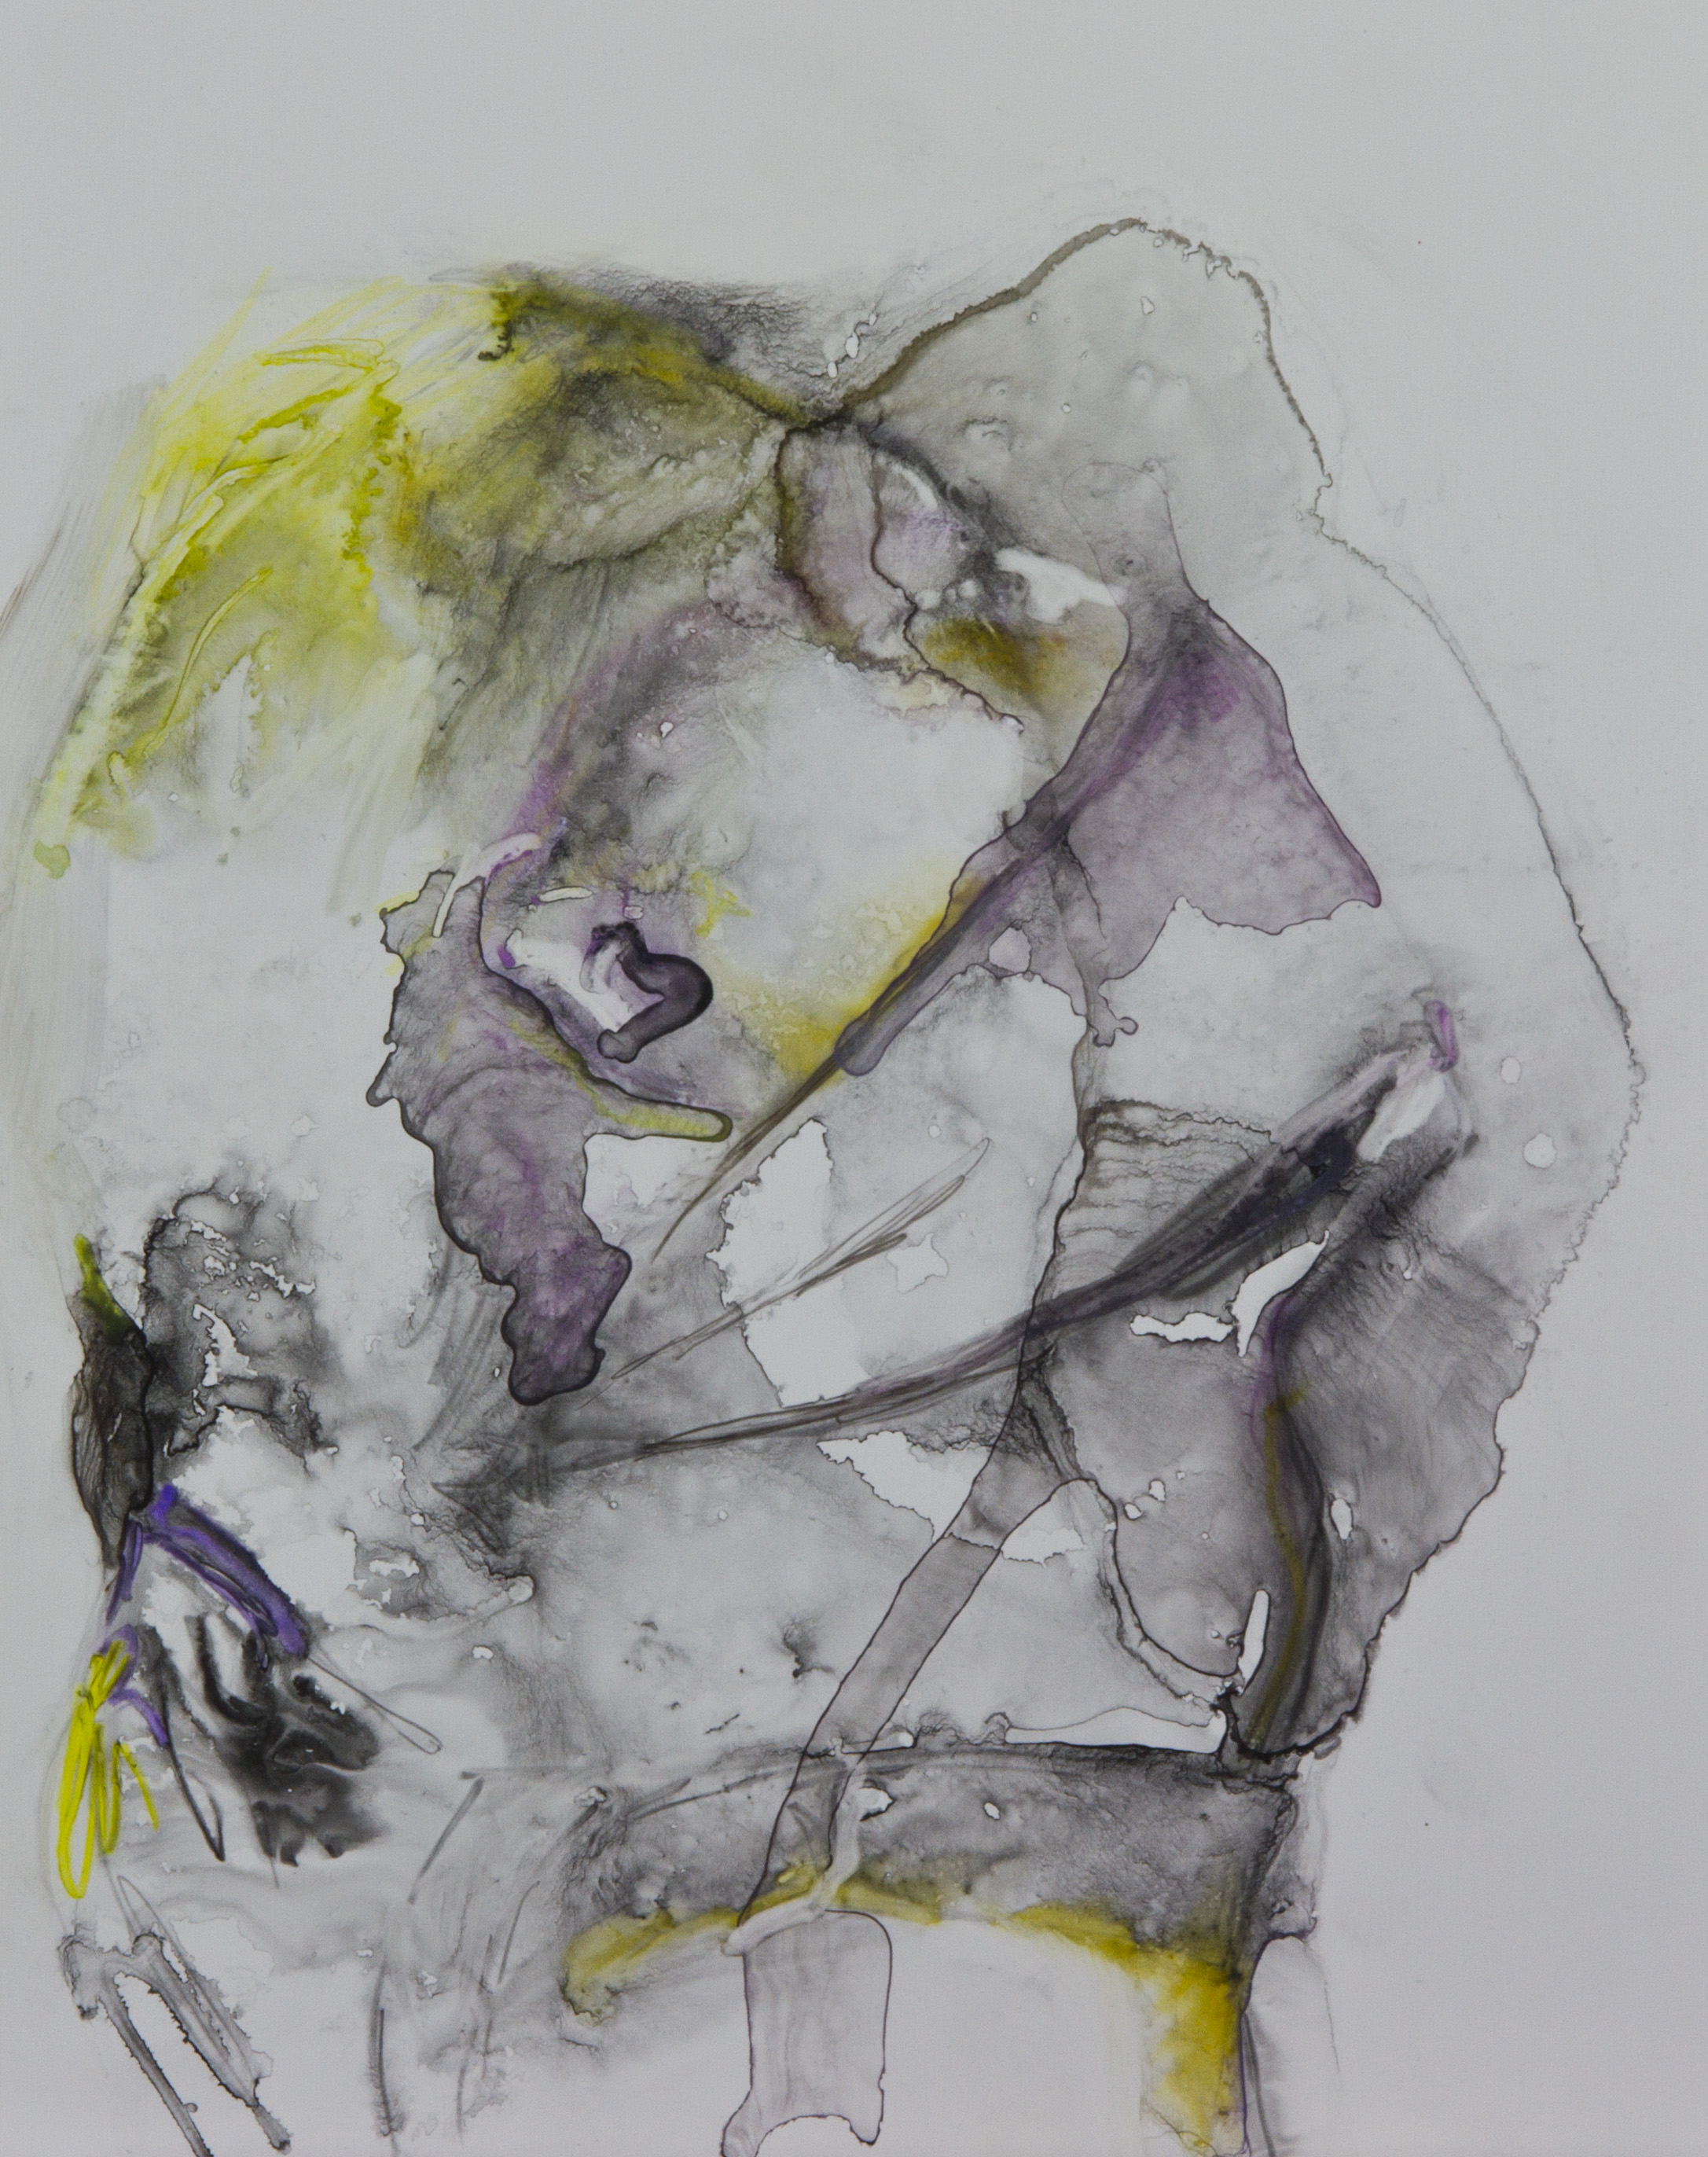 Wouldn't Touch Me Like That, 2011, watercolor o polypropylene, 11x14 inches